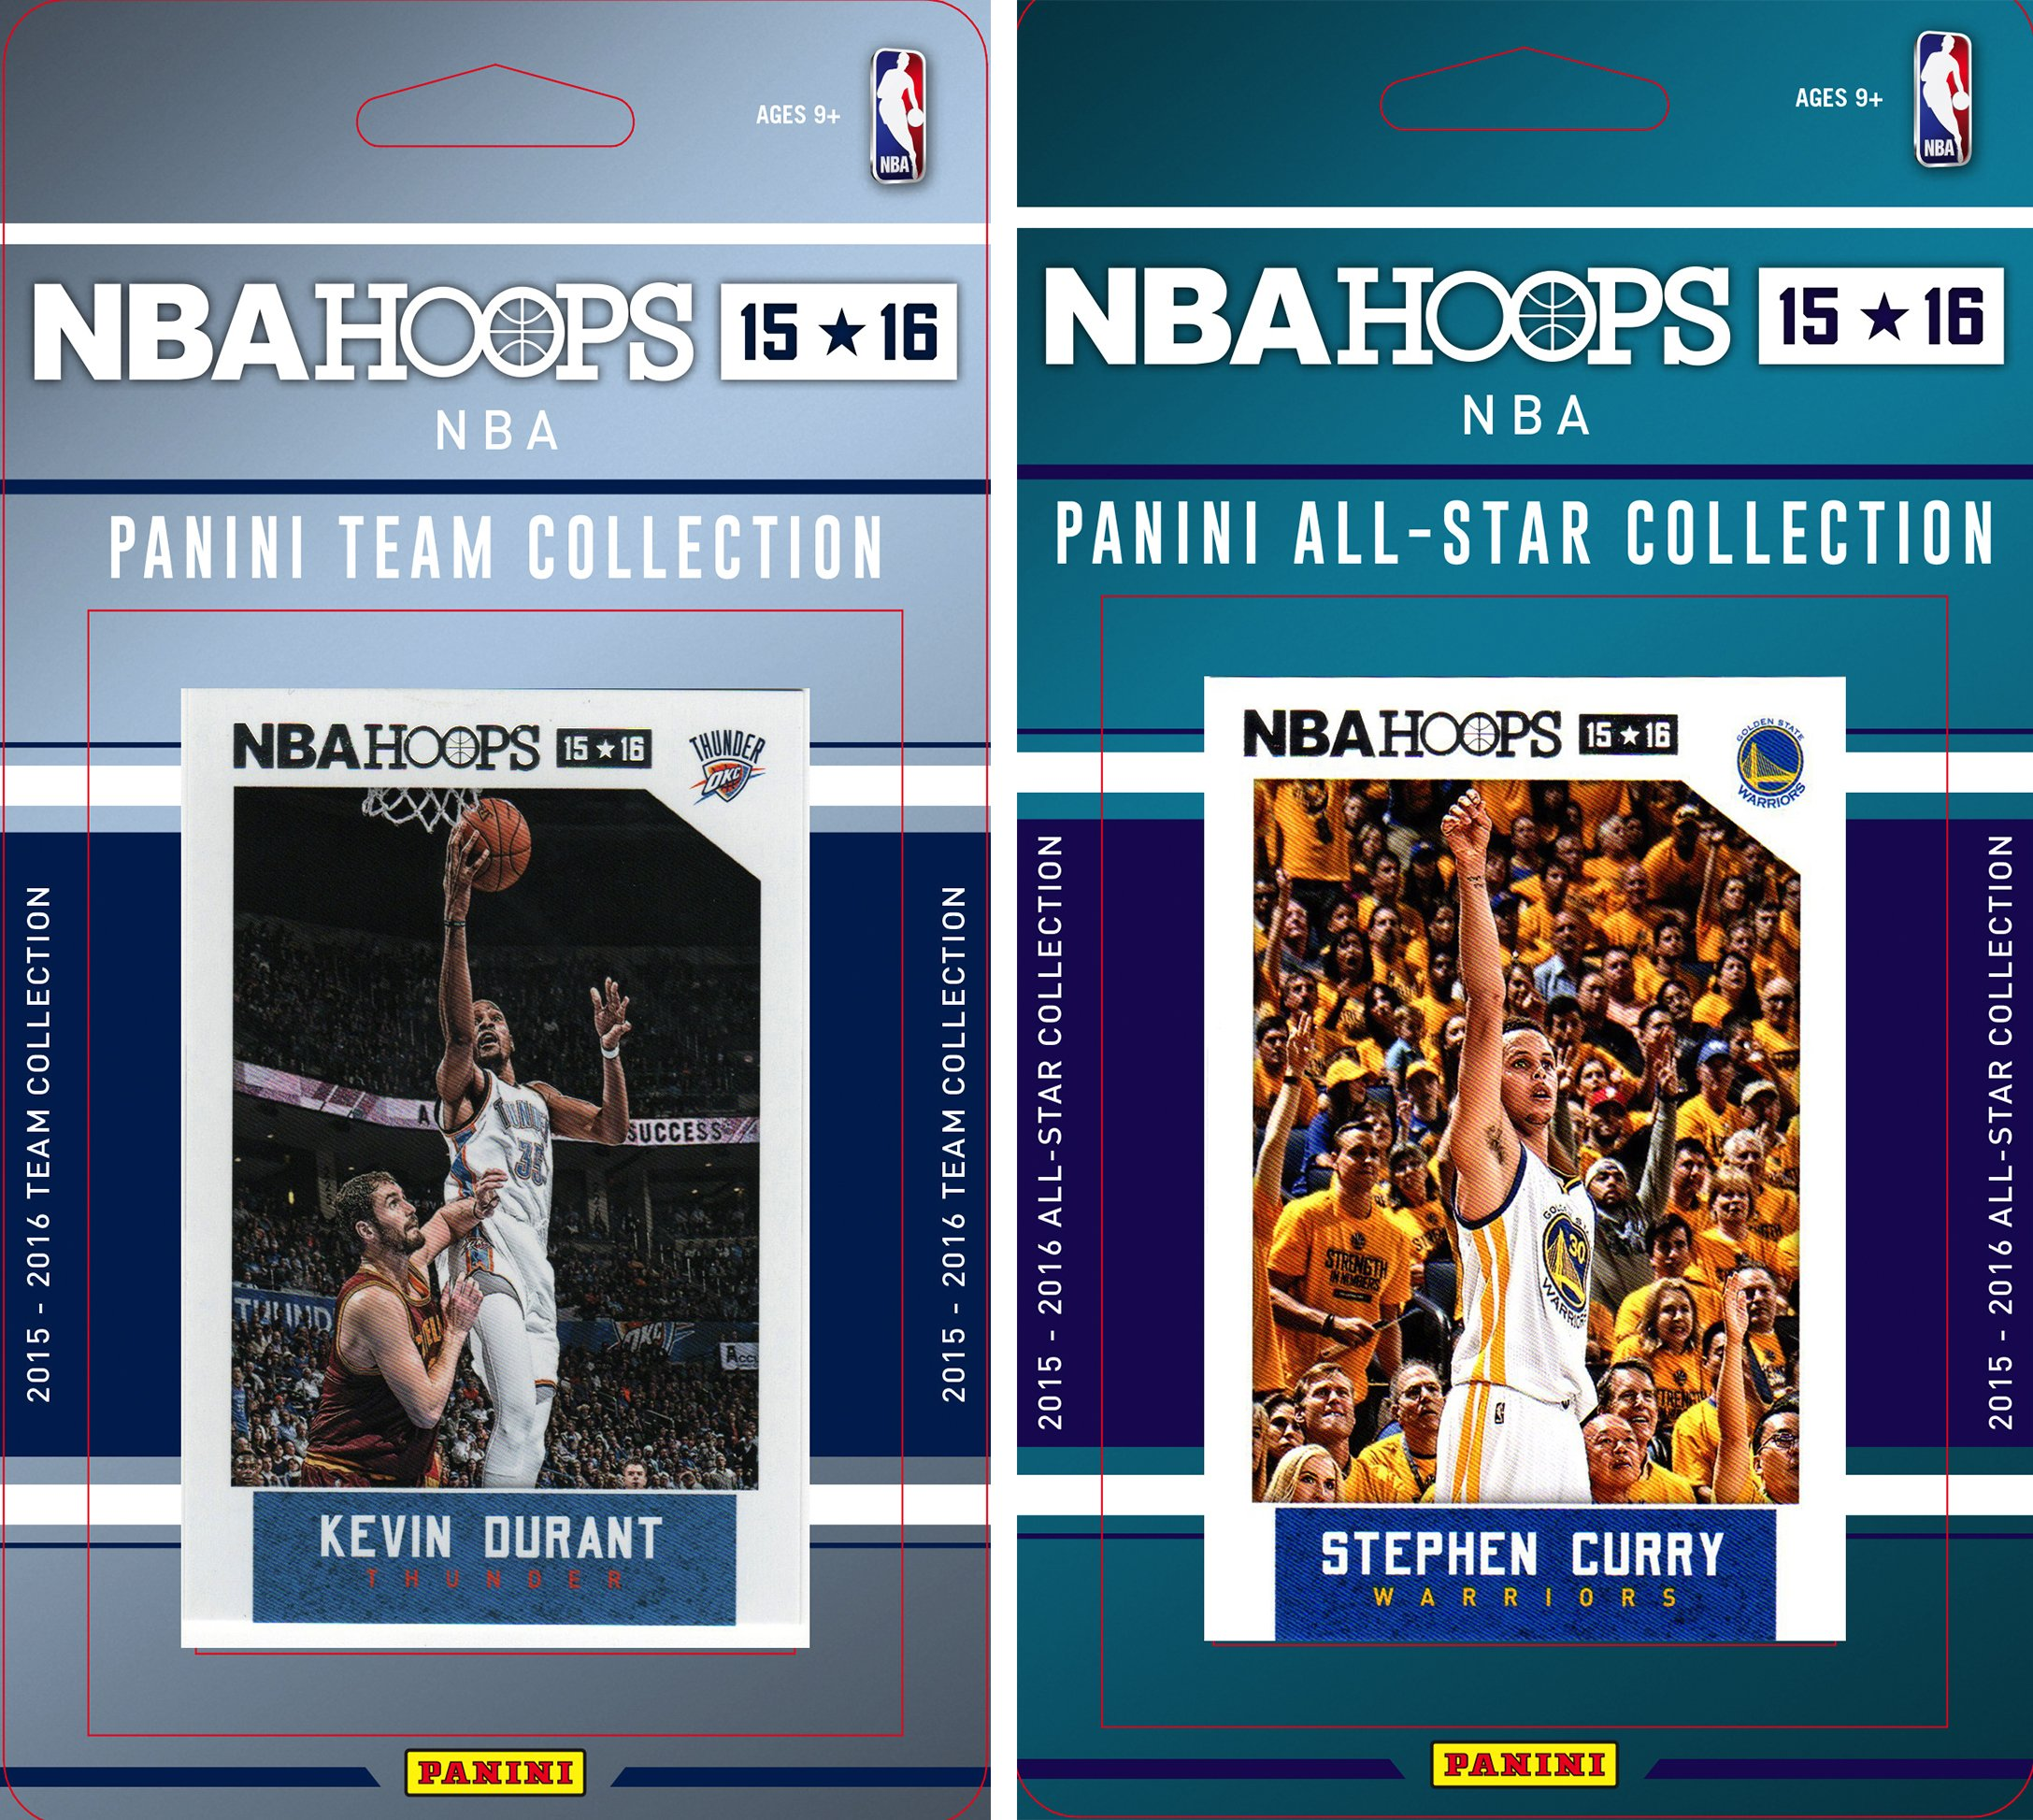 NBA Oklahoma City Thunder Licensed 2015-16 Hoops Team Plus All-Star Trading Card Set